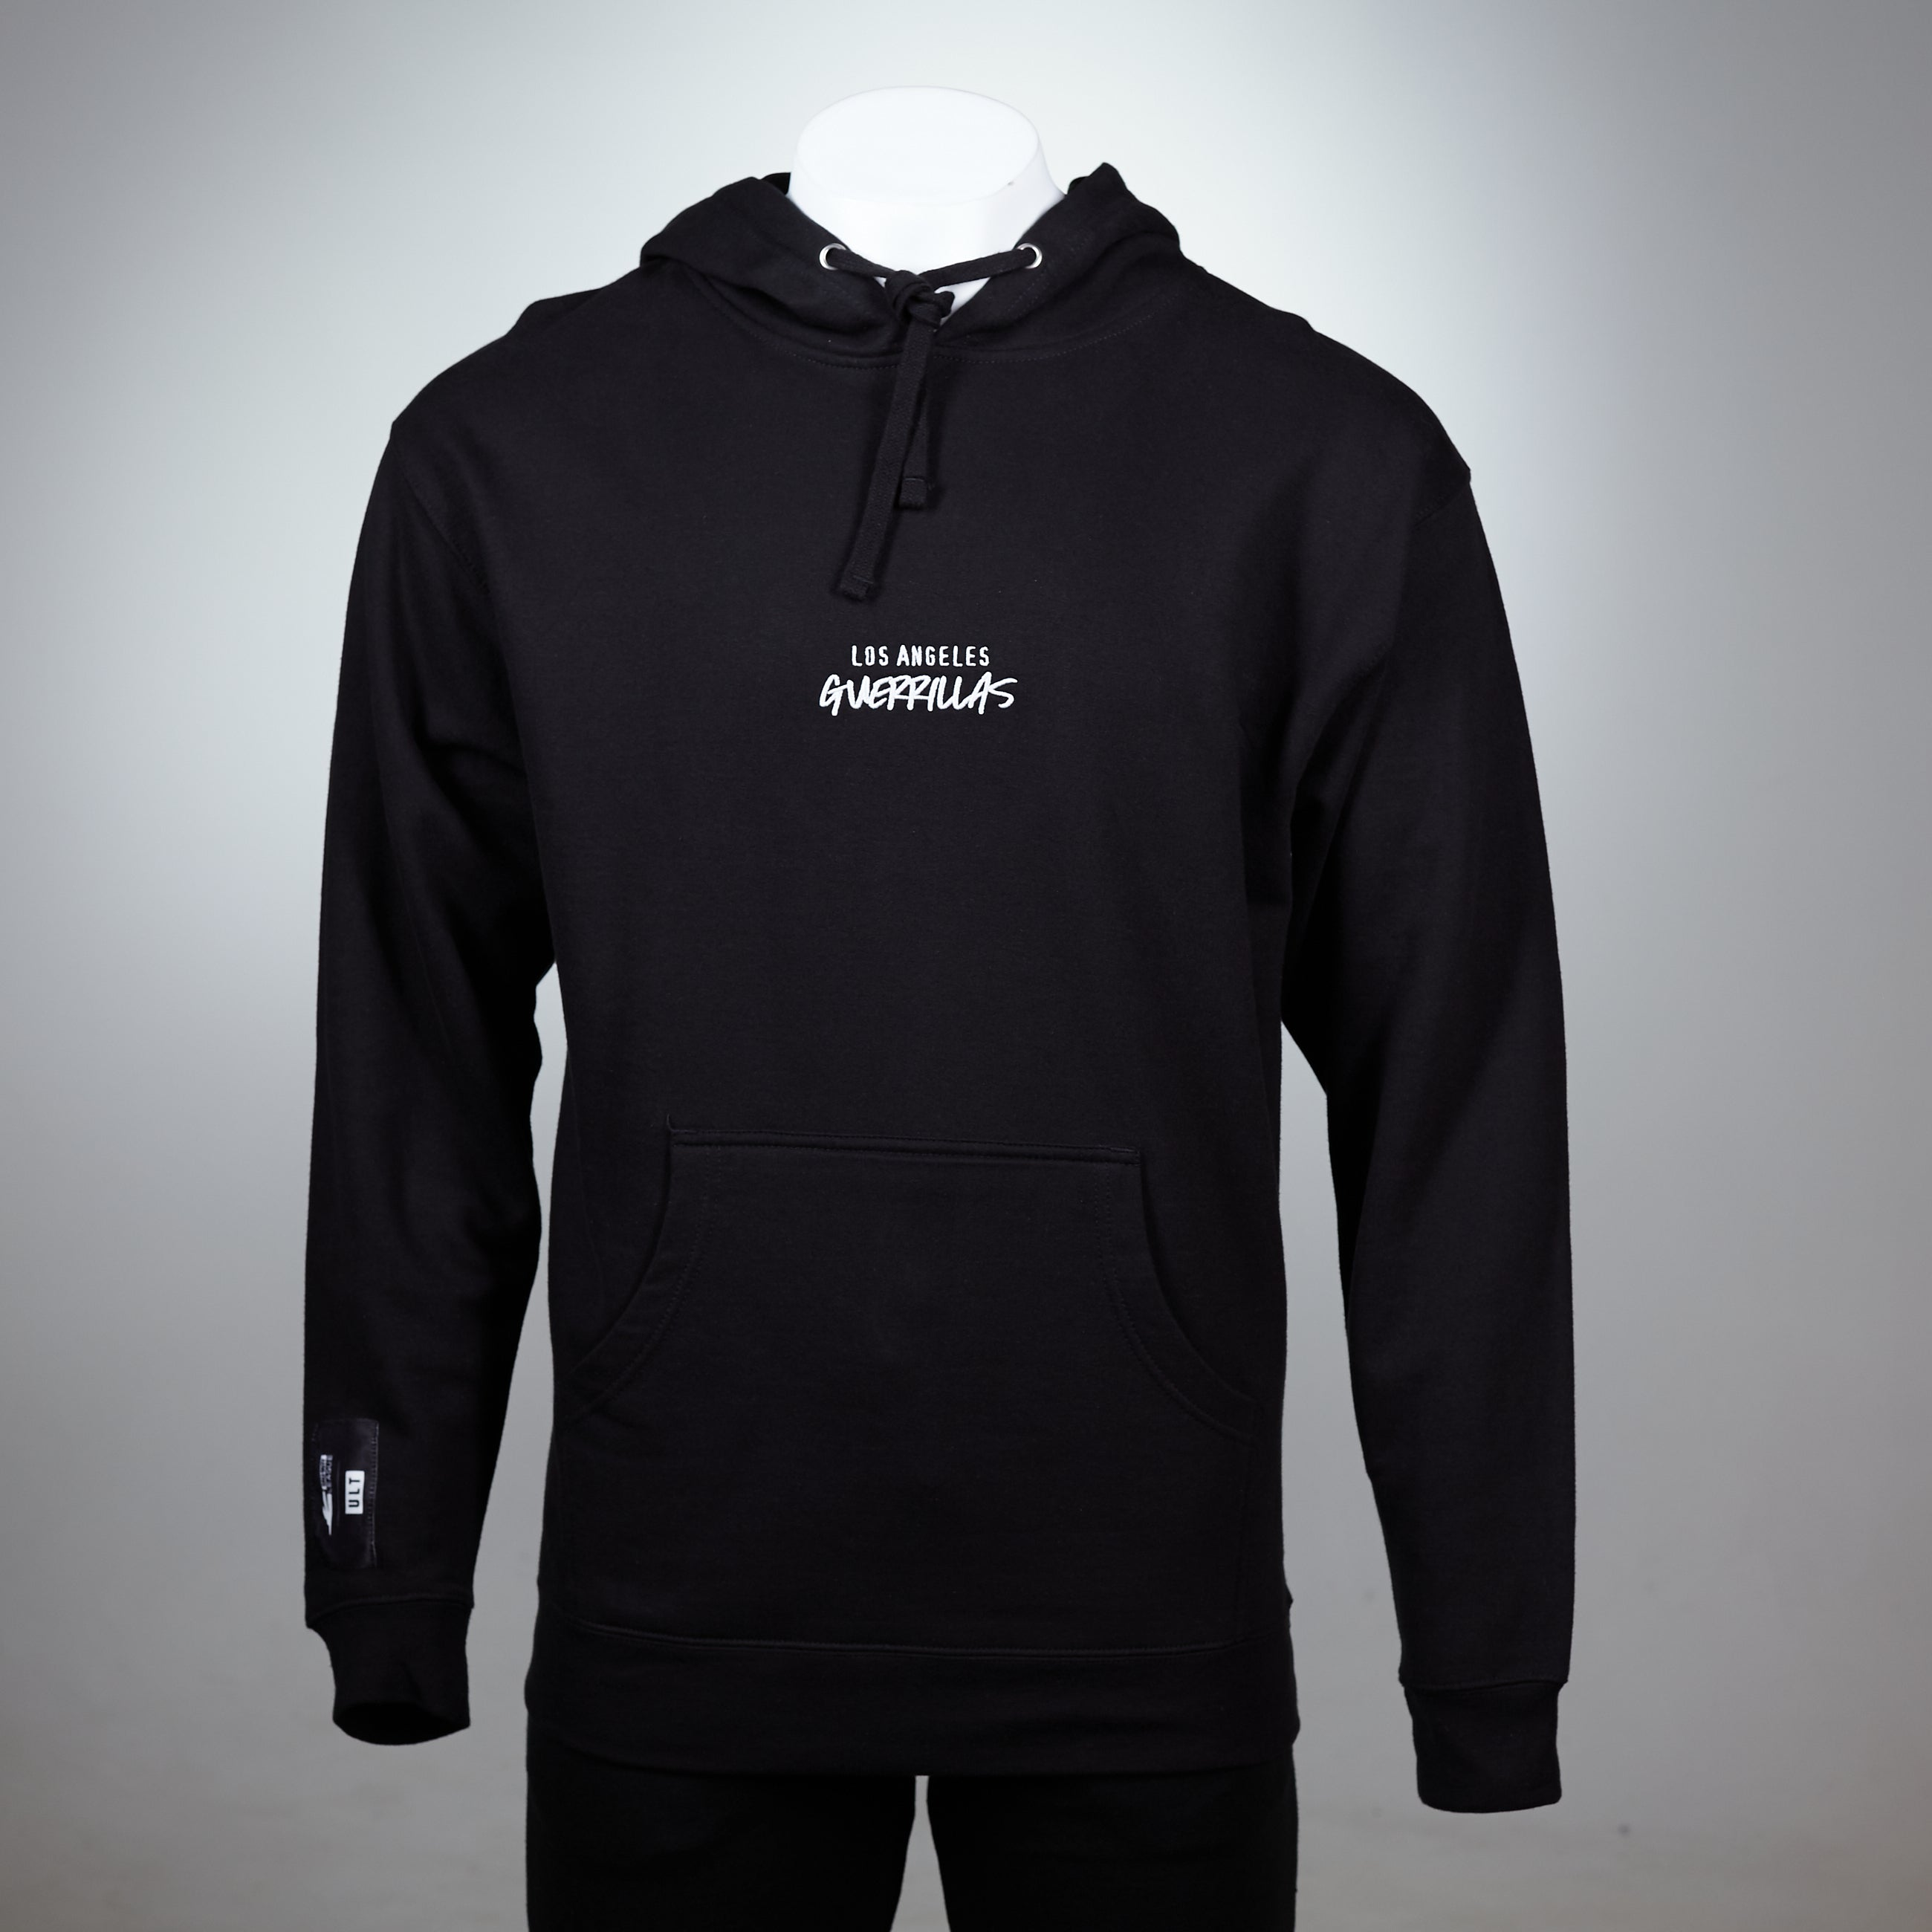 Los Angeles Guerrillas Tilt Shift Hoodie